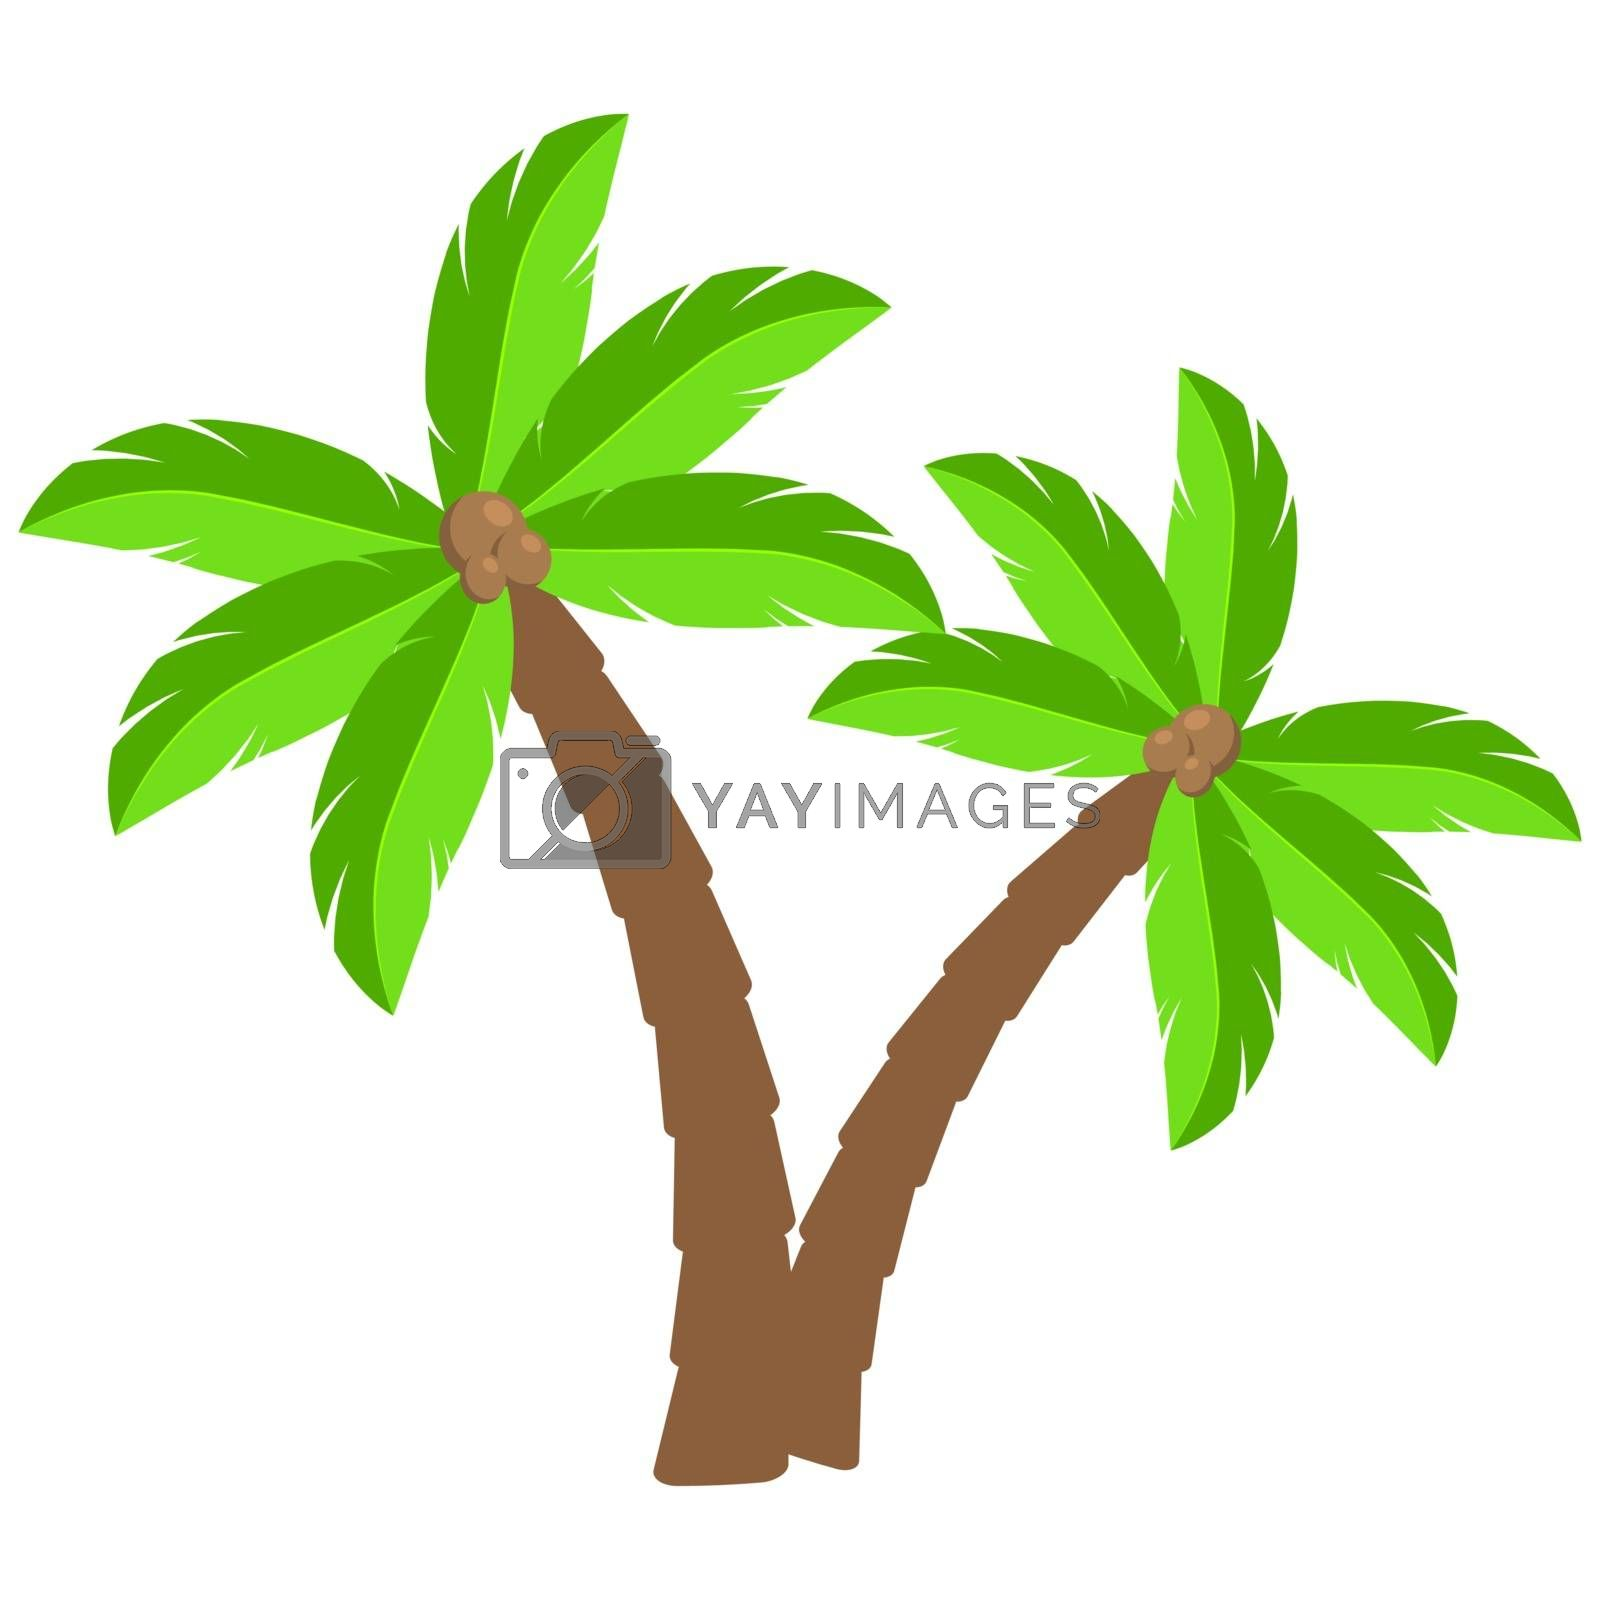 Tropical palm trees cartoon illustration.Two curved coco palm isolated on white.  Exotic palmtree illustration. Paradise plants symbol clipart.Design element for vacations leaflet or advert.